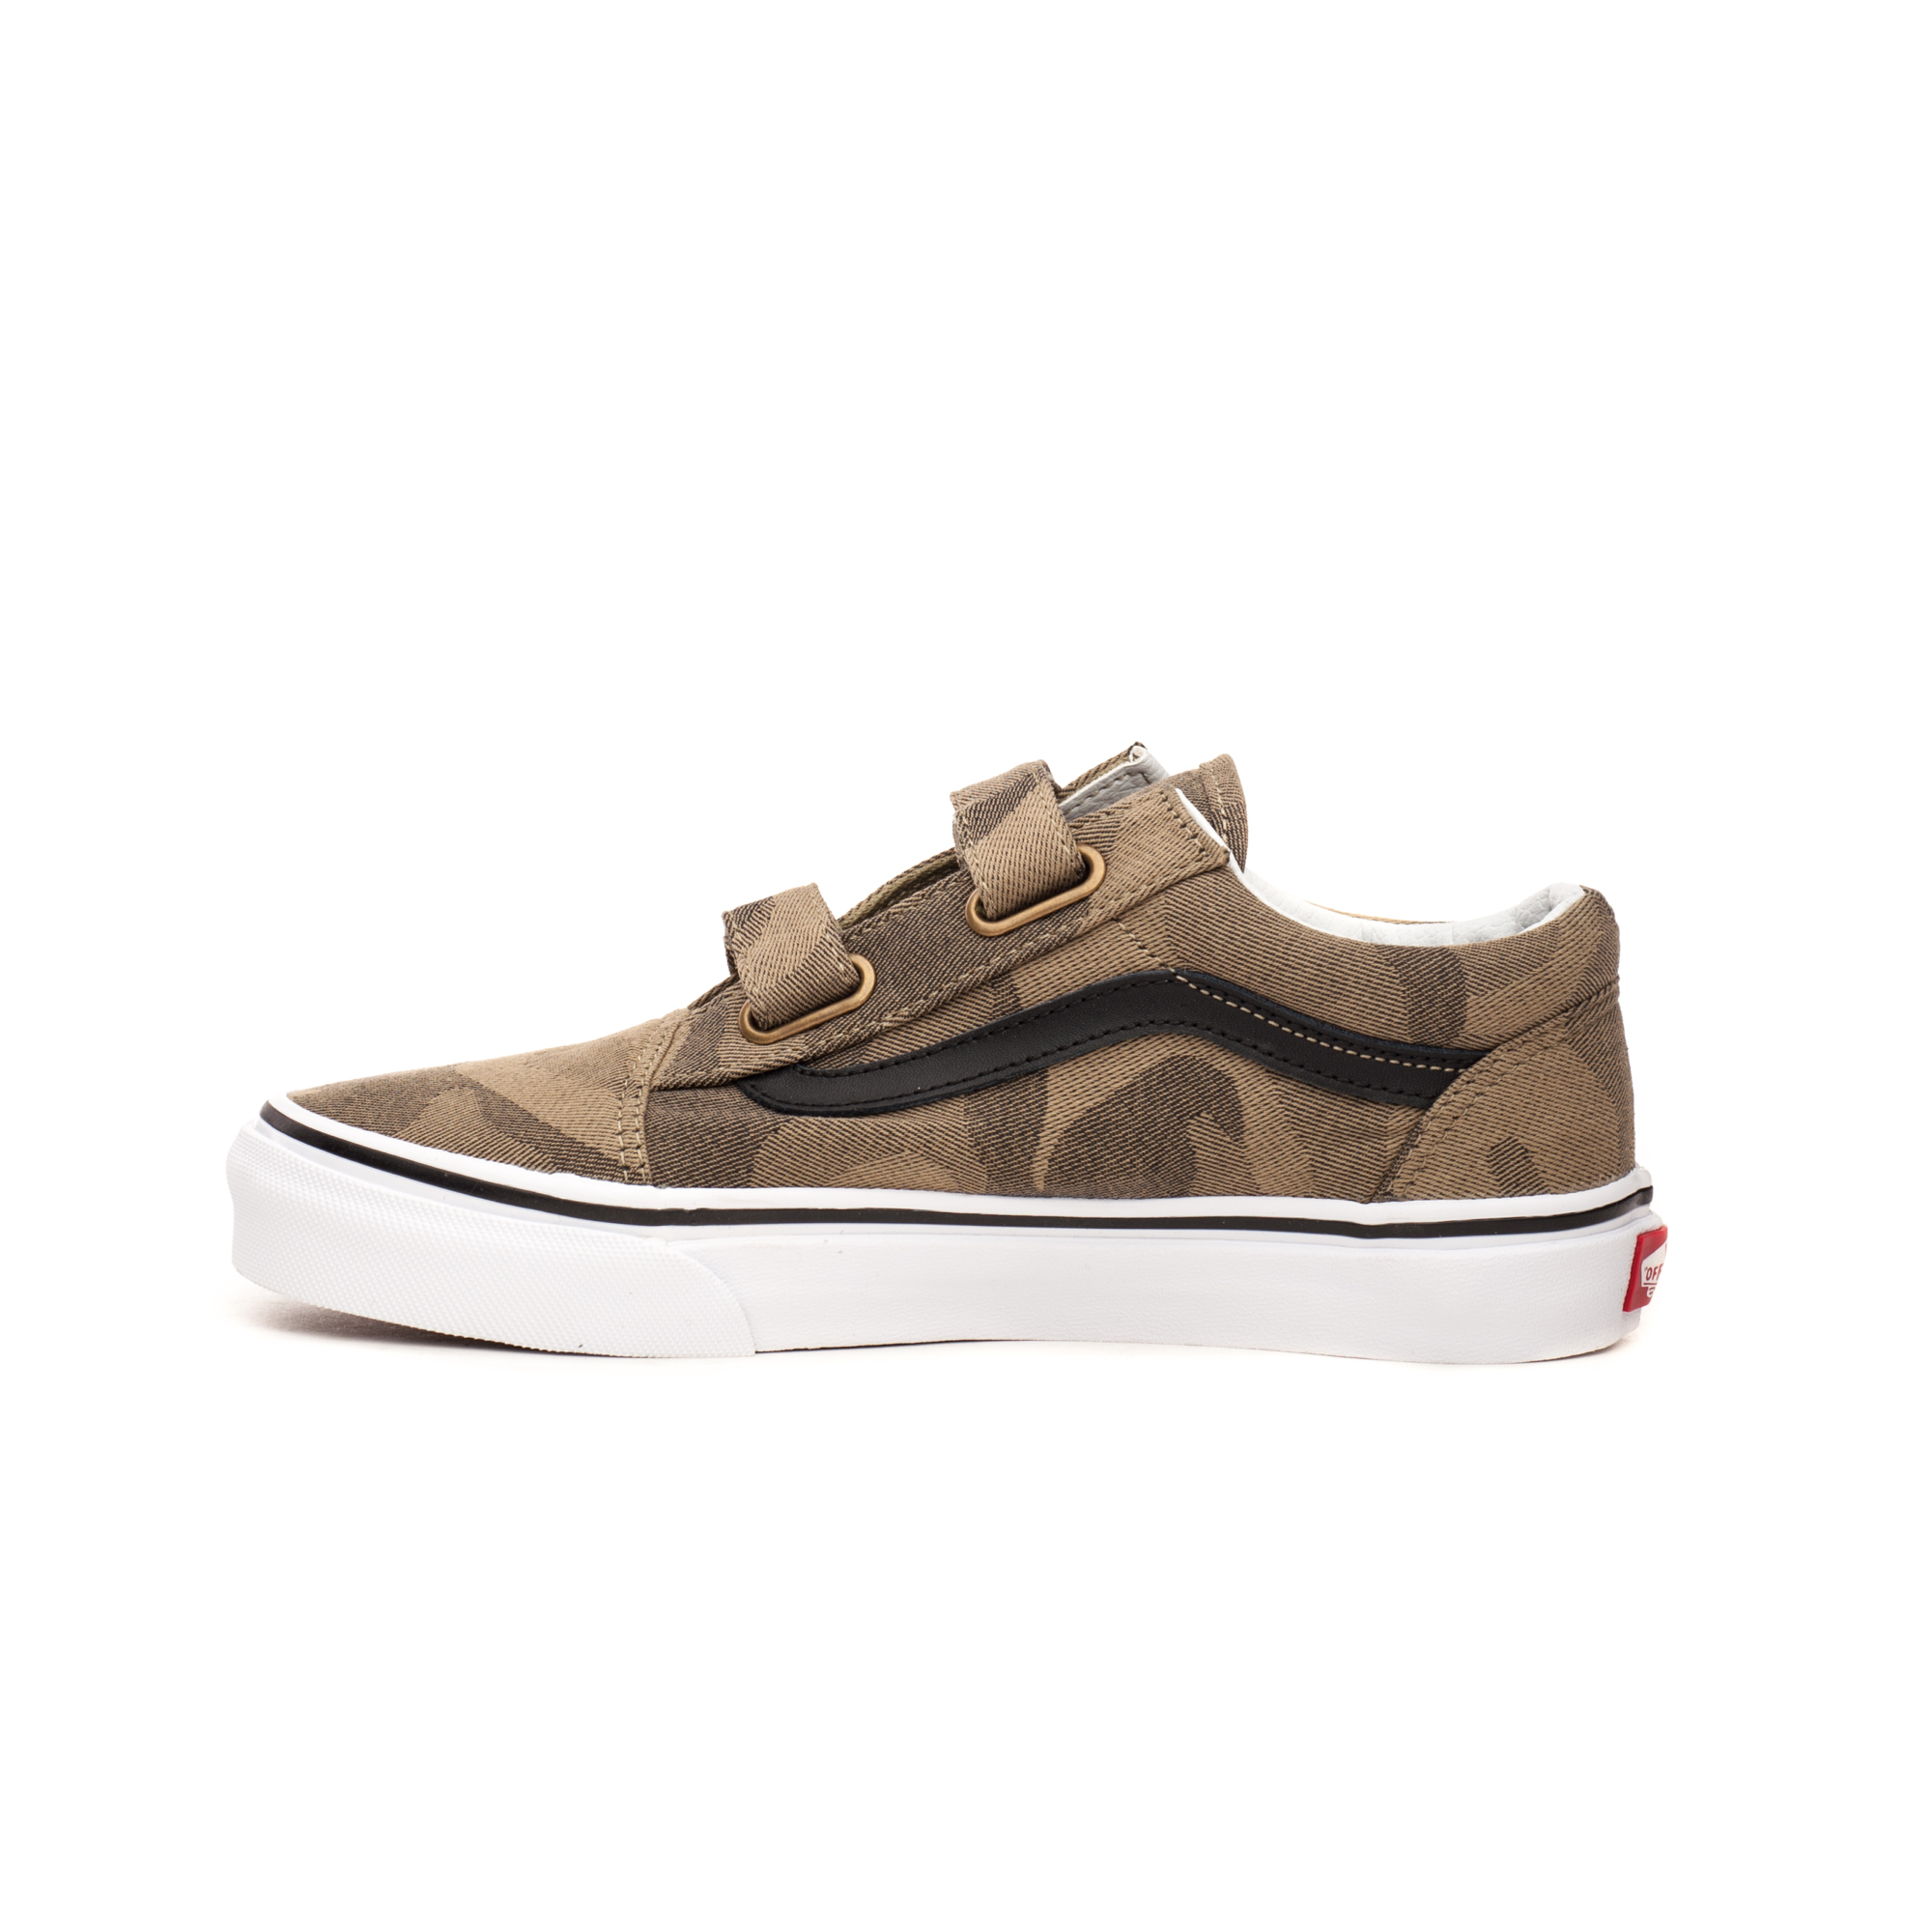 Кеди дитячі Vans K OLD SKOOL